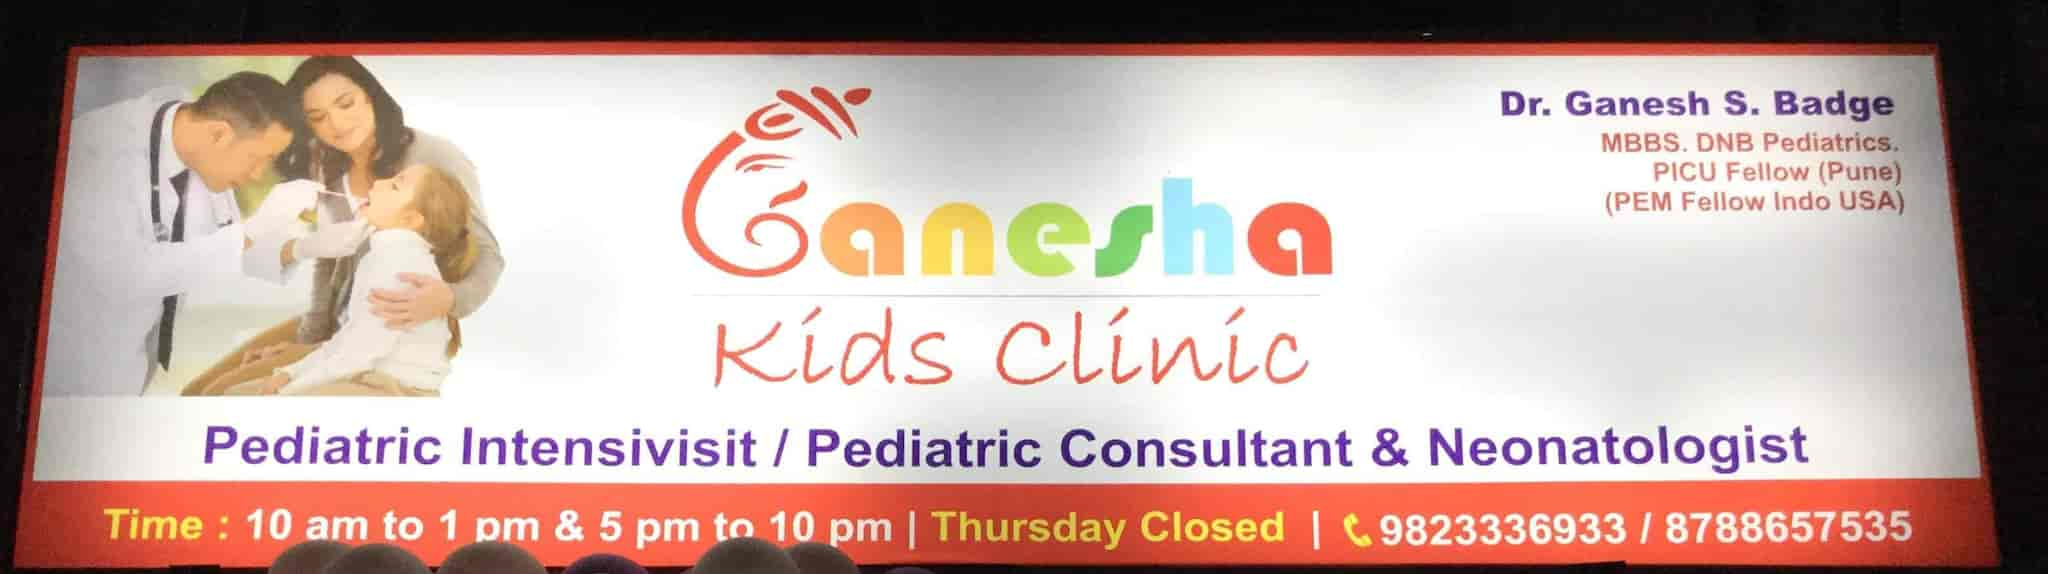 Ganesha Kids Clinic - Paediatricians - Book Appointment